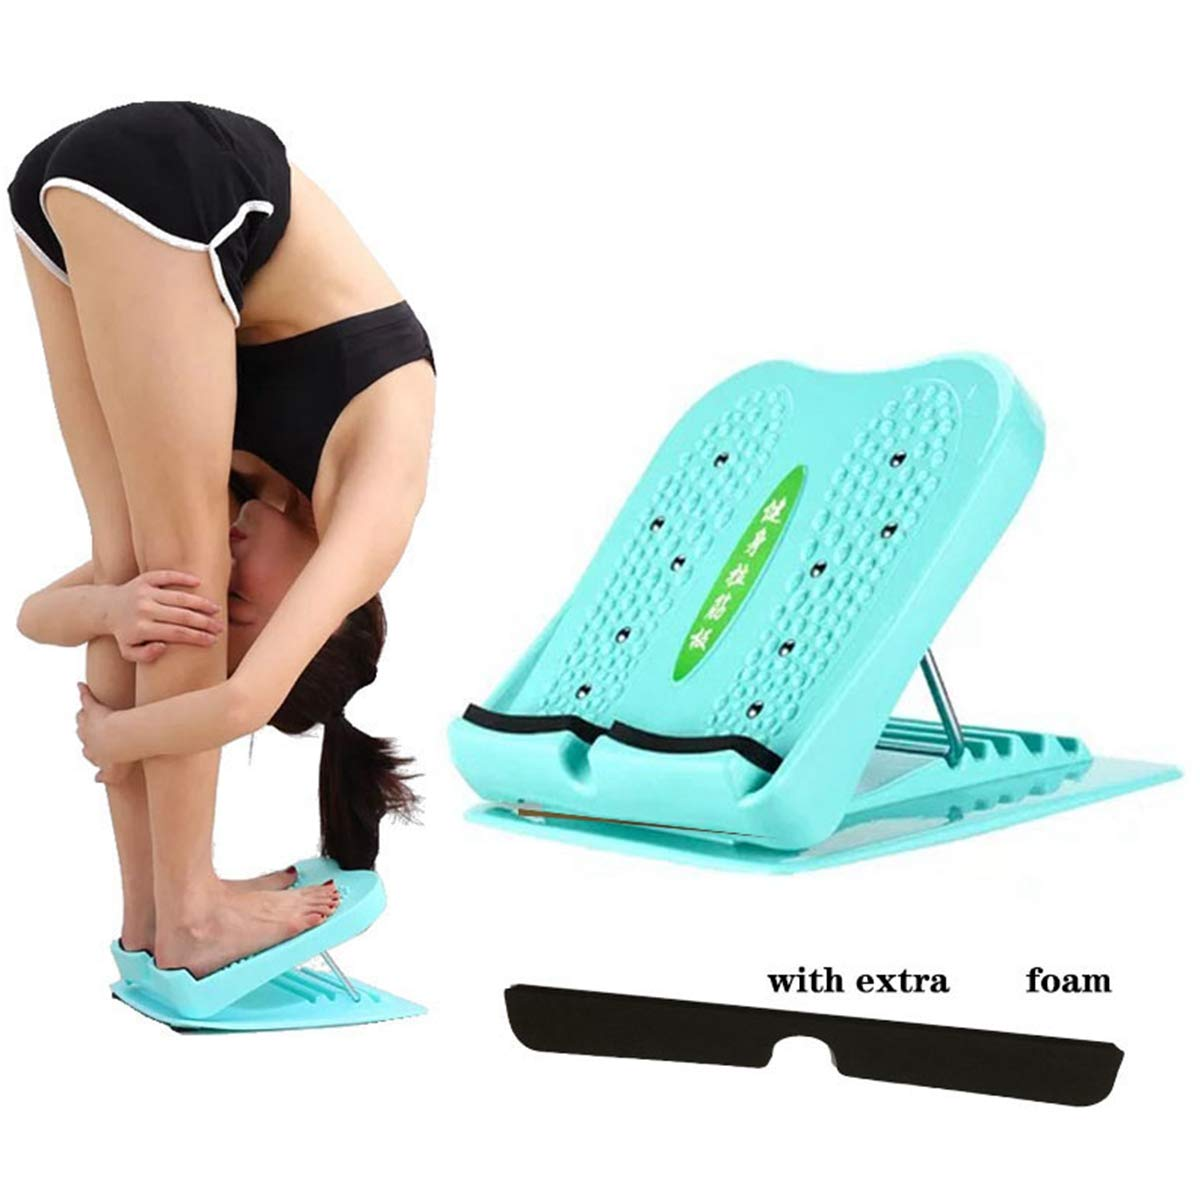 Leg Calves Muscle Exerciser Achilles RO/&LY Portable Slant Board-Adjustable Incline Board-Leg Exercise Ankle Foot Calf Stretcher-Balancing Stretching Board Ankle Therapy Stretch Wedge for Hamstring